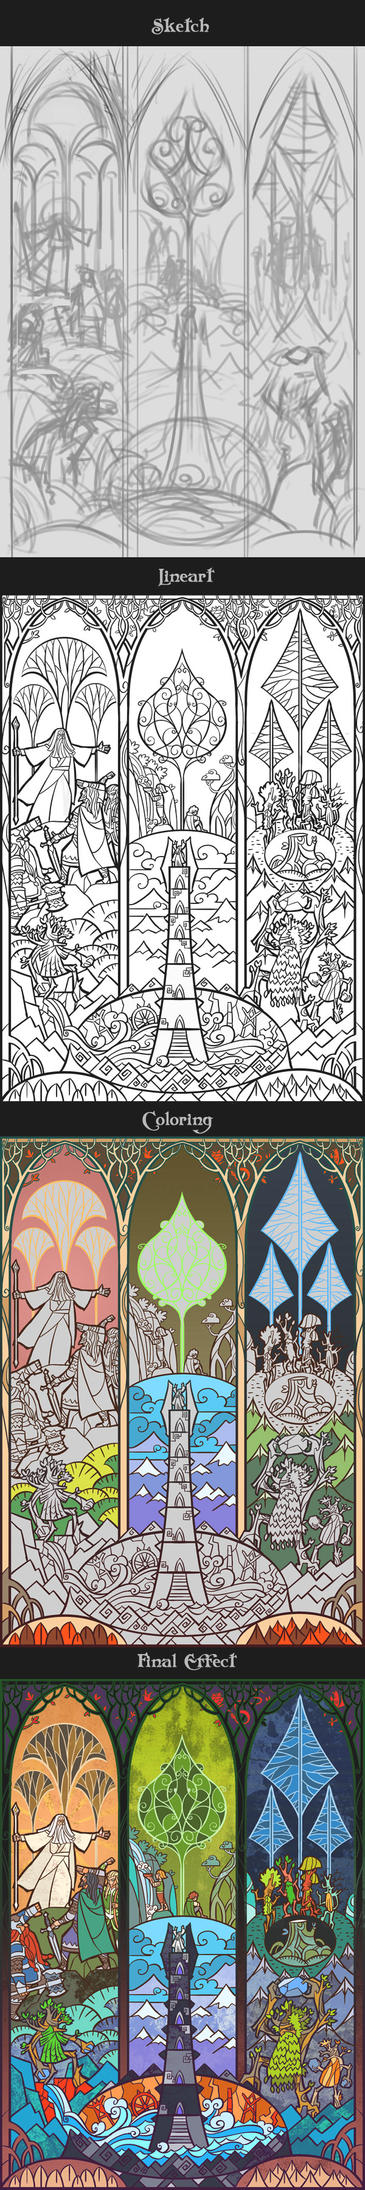 progress of Ent the shepherd of forest by breathing2004